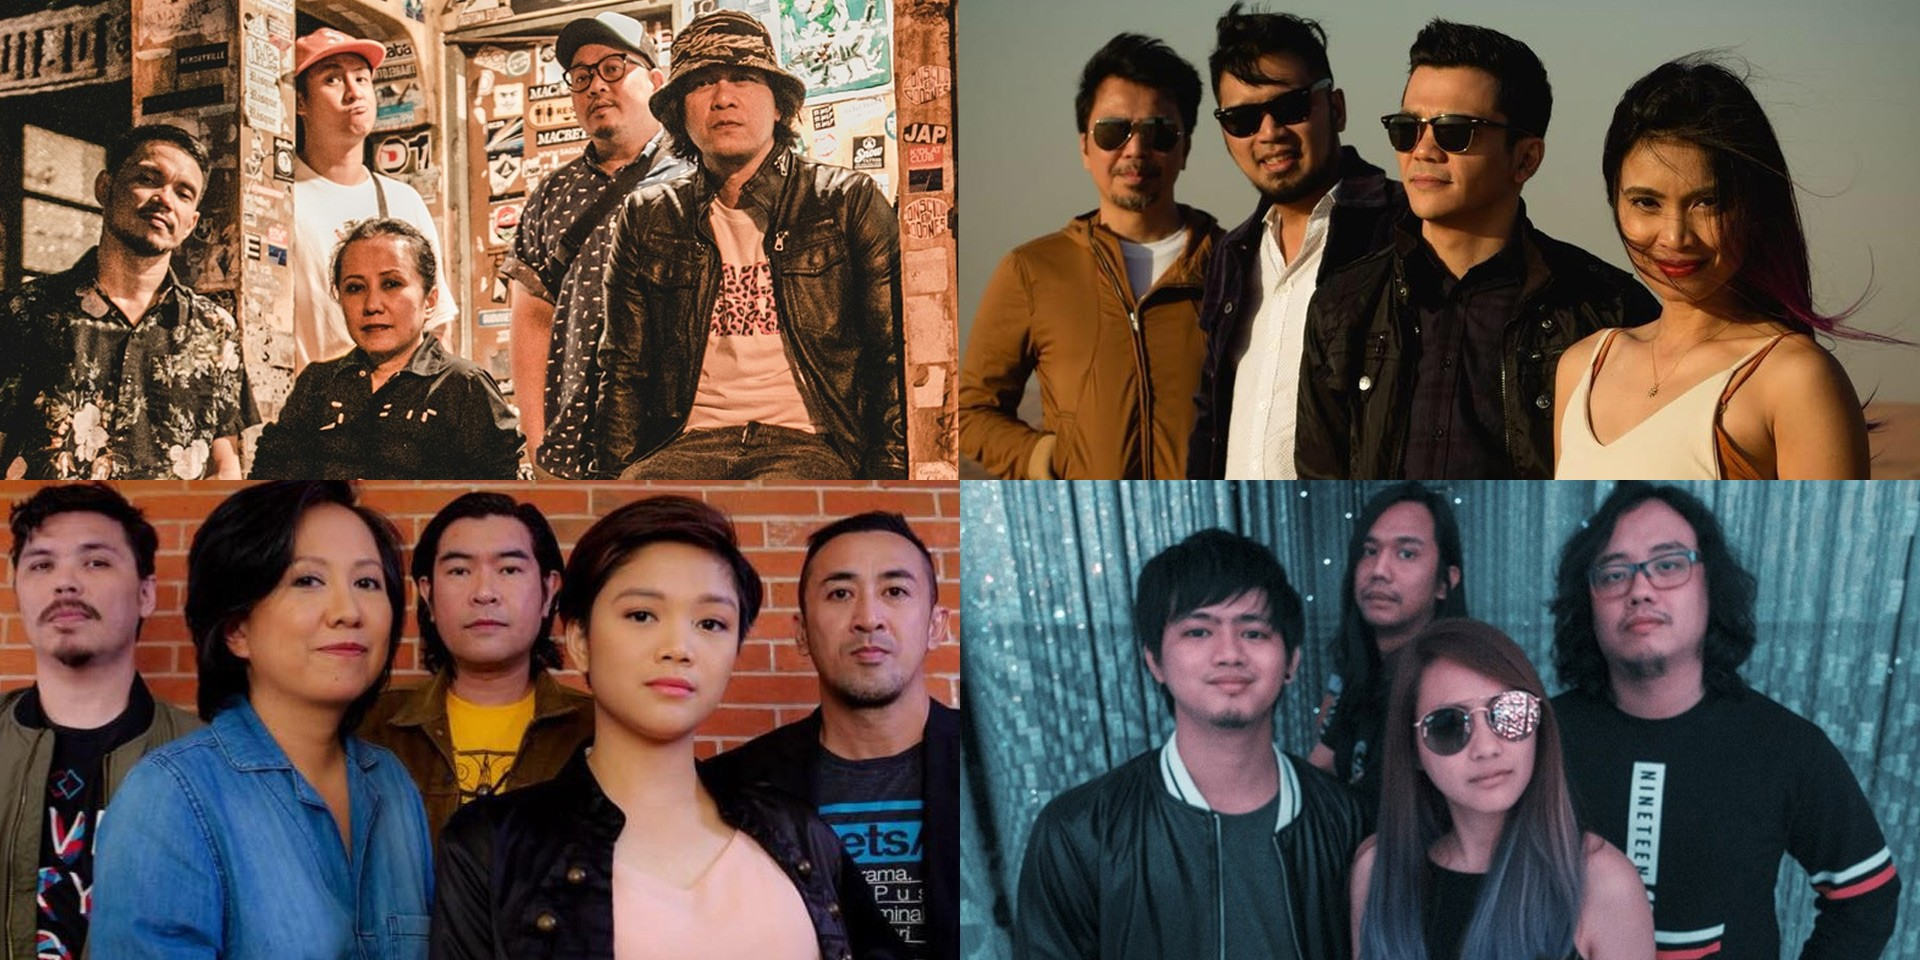 Jam and hit a strike with your favorite acts at Soupstar Bowl this December